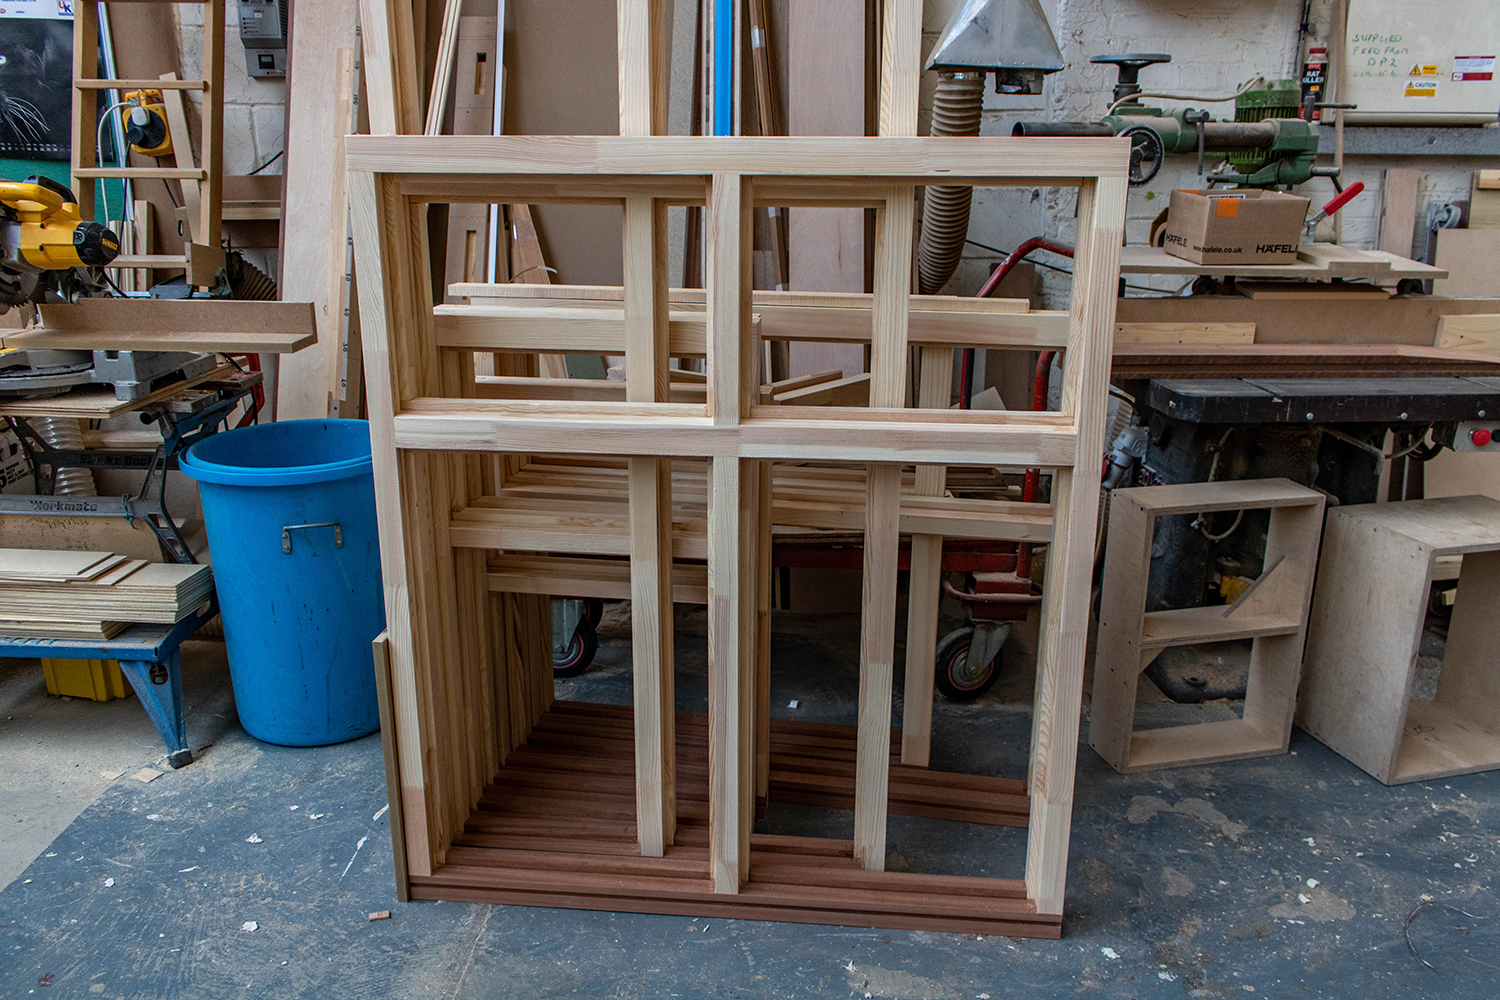 Set of wooden frames for windows in joinery workshop